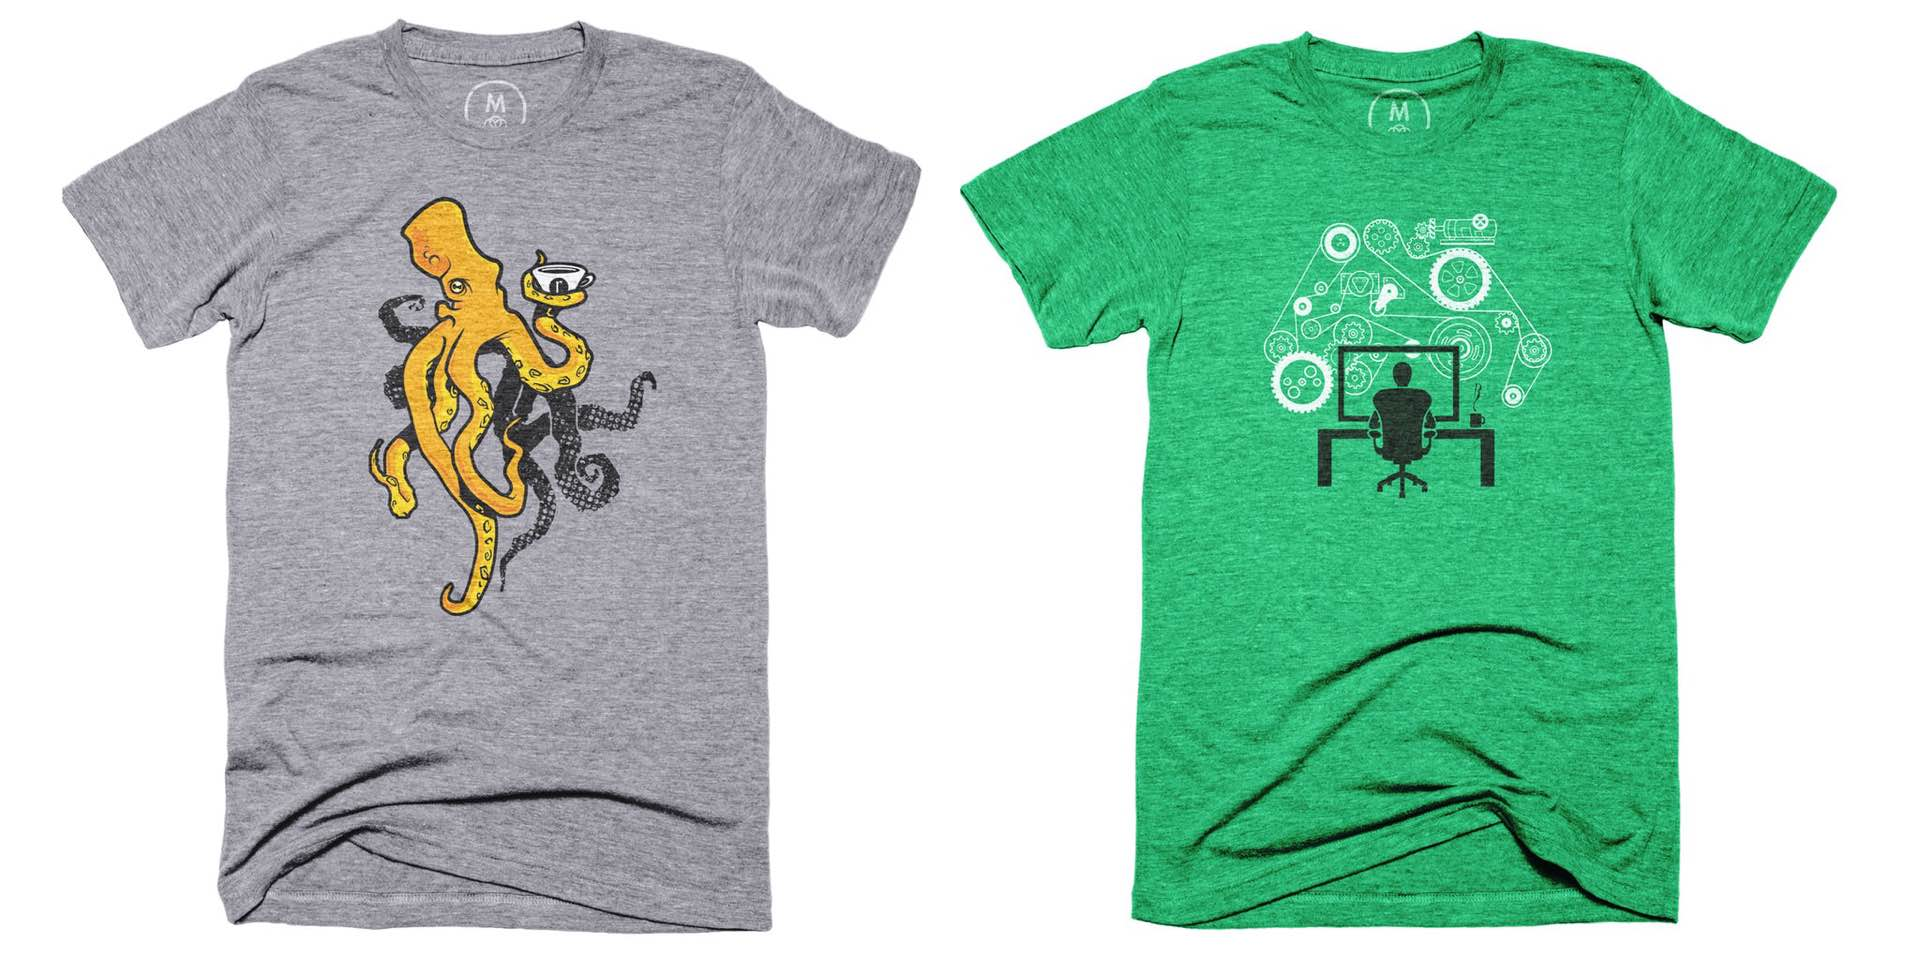 michael-lopp-kyle-the-octopus-and-the-zone-graphic-tees